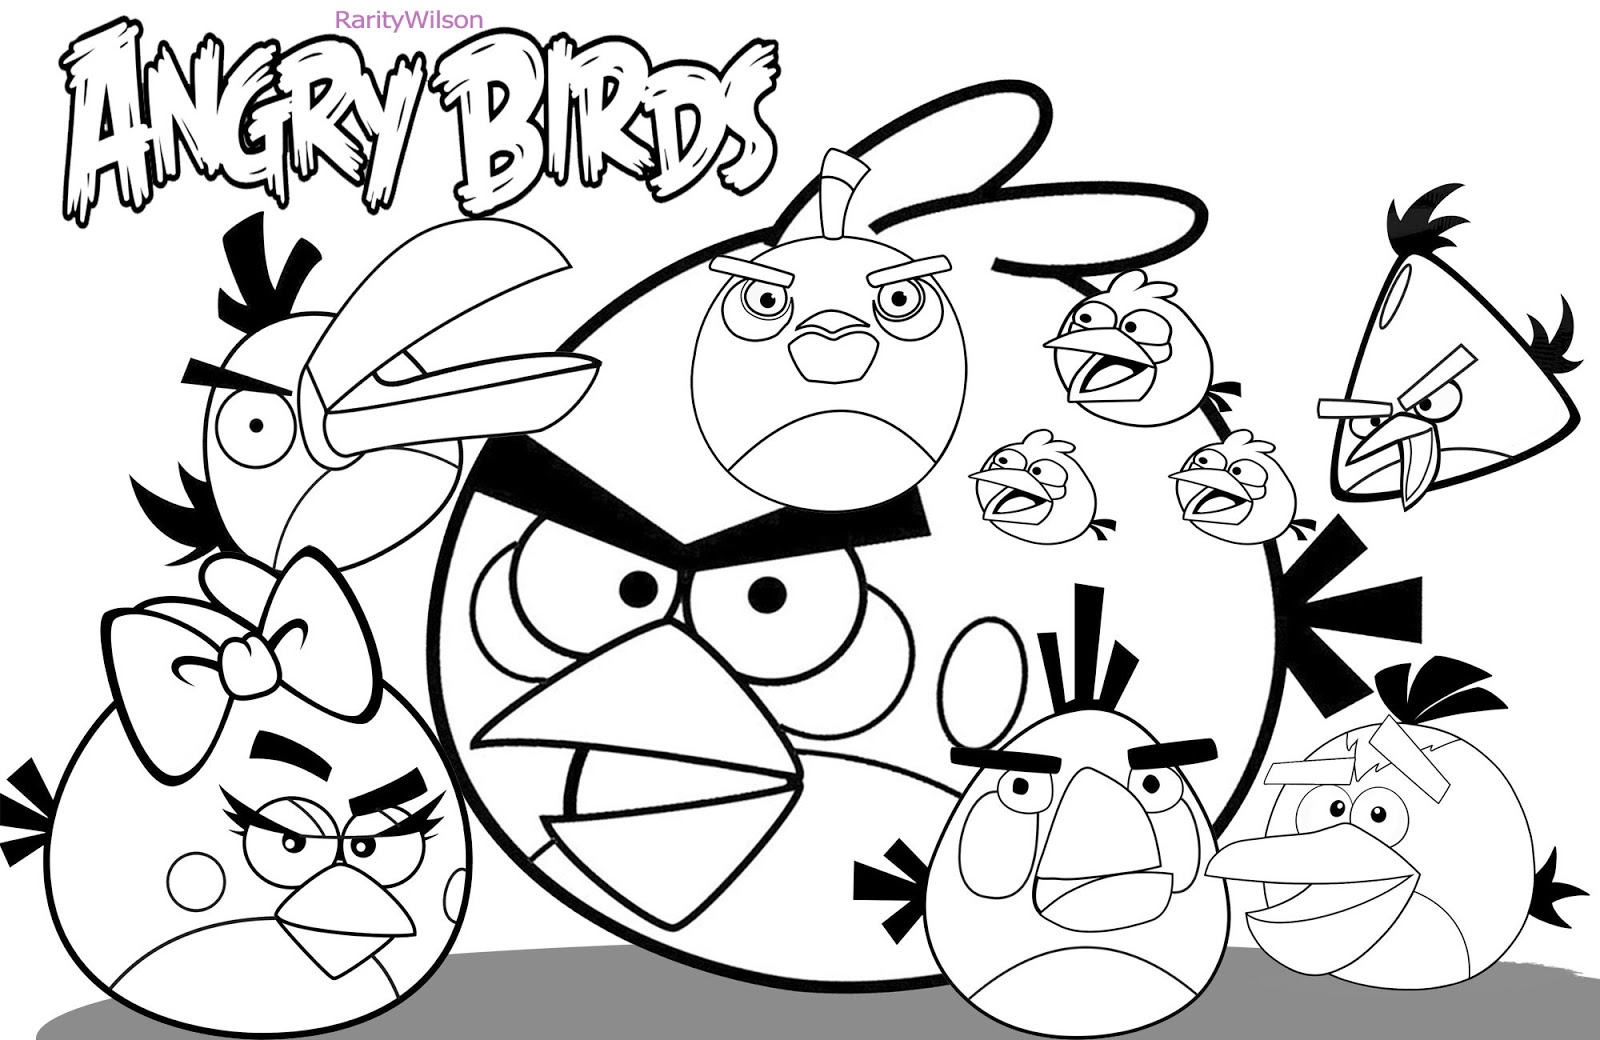 photograph regarding Angry Birds Printable Coloring Pages named Custom made Get together Invitations Information - Offended Birds Totally free Printable